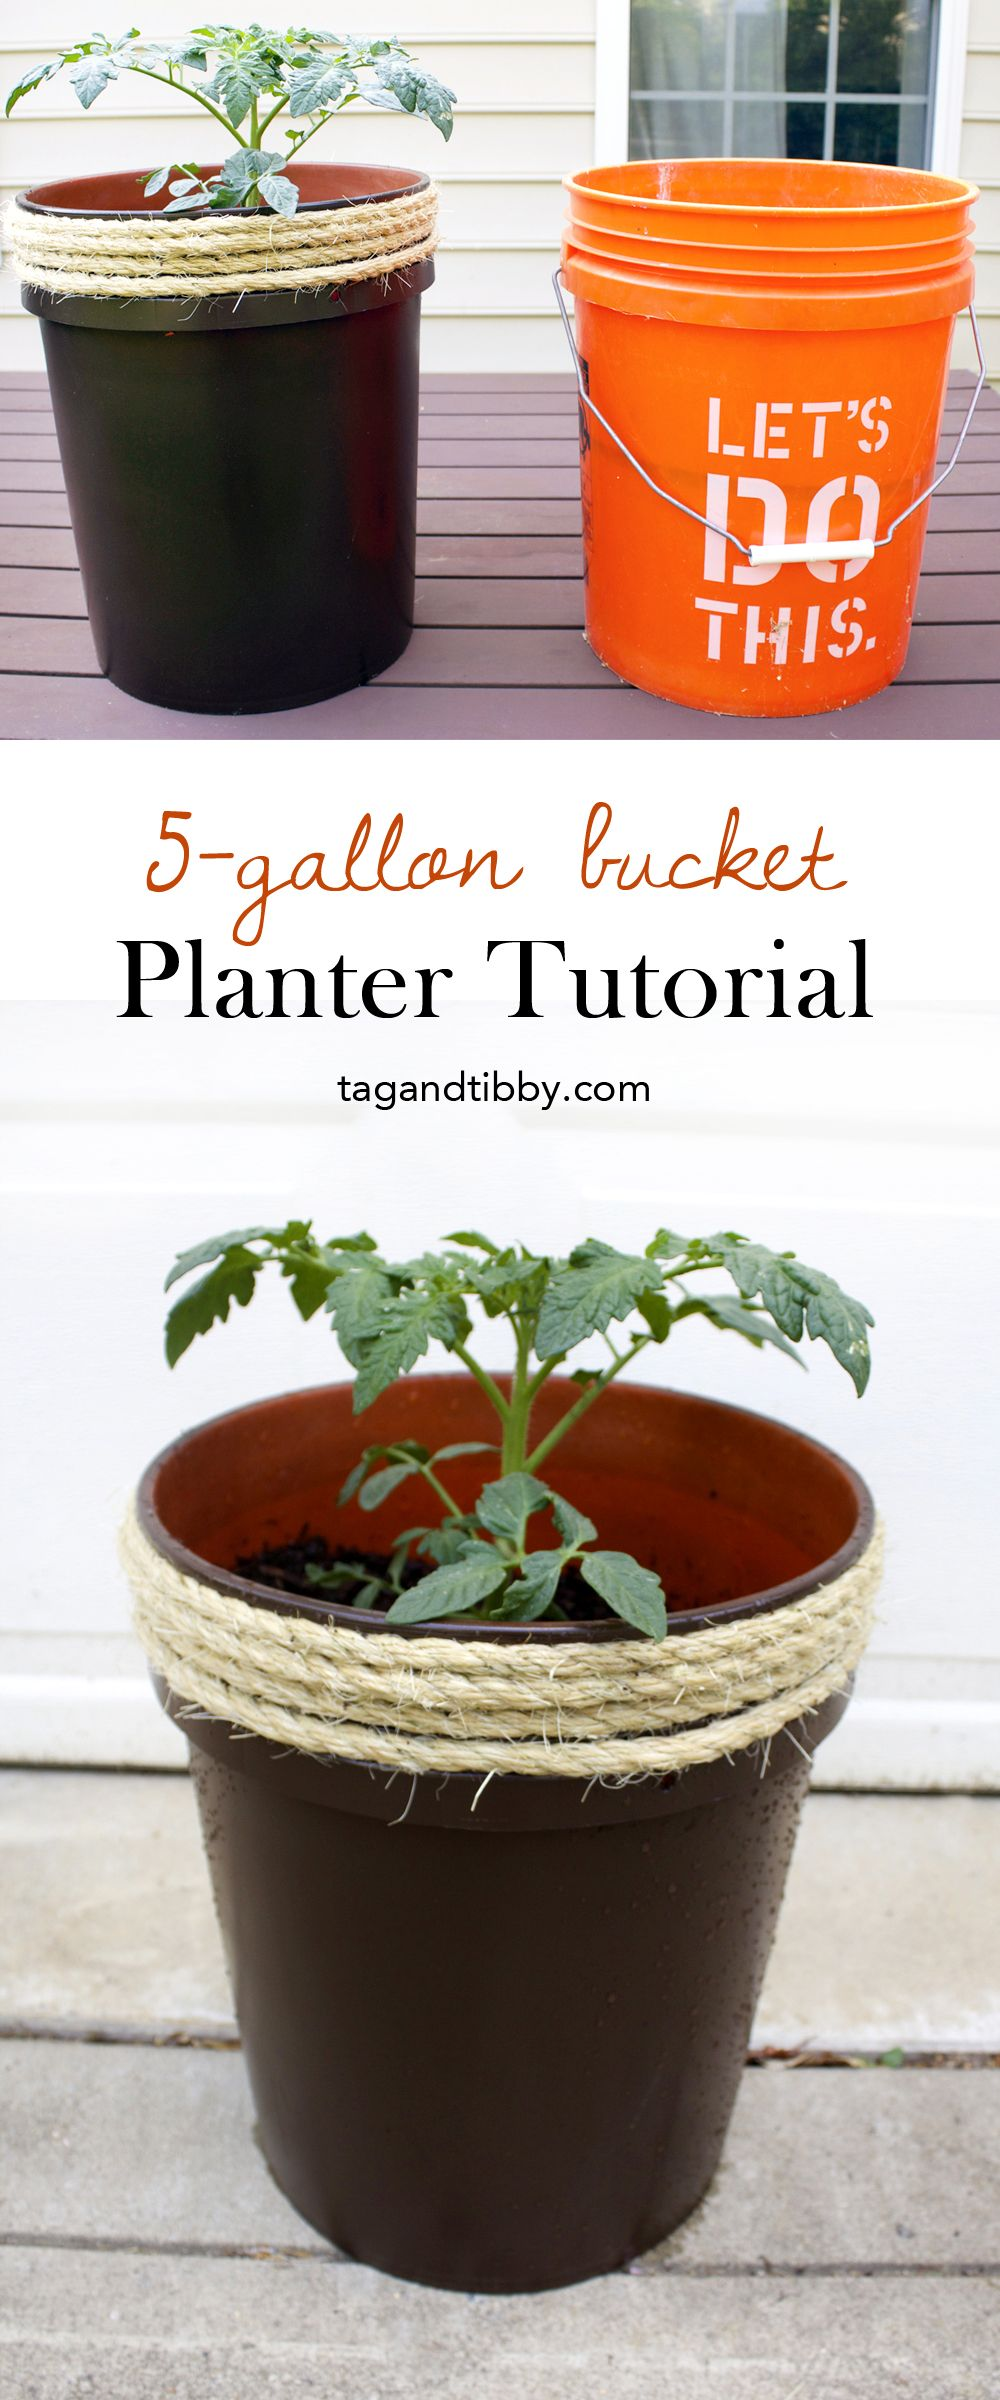 How To Make A Planter From A 5 Gallon Bucket Tag Tibby Design Bucket Planters Bucket Gardening Planters